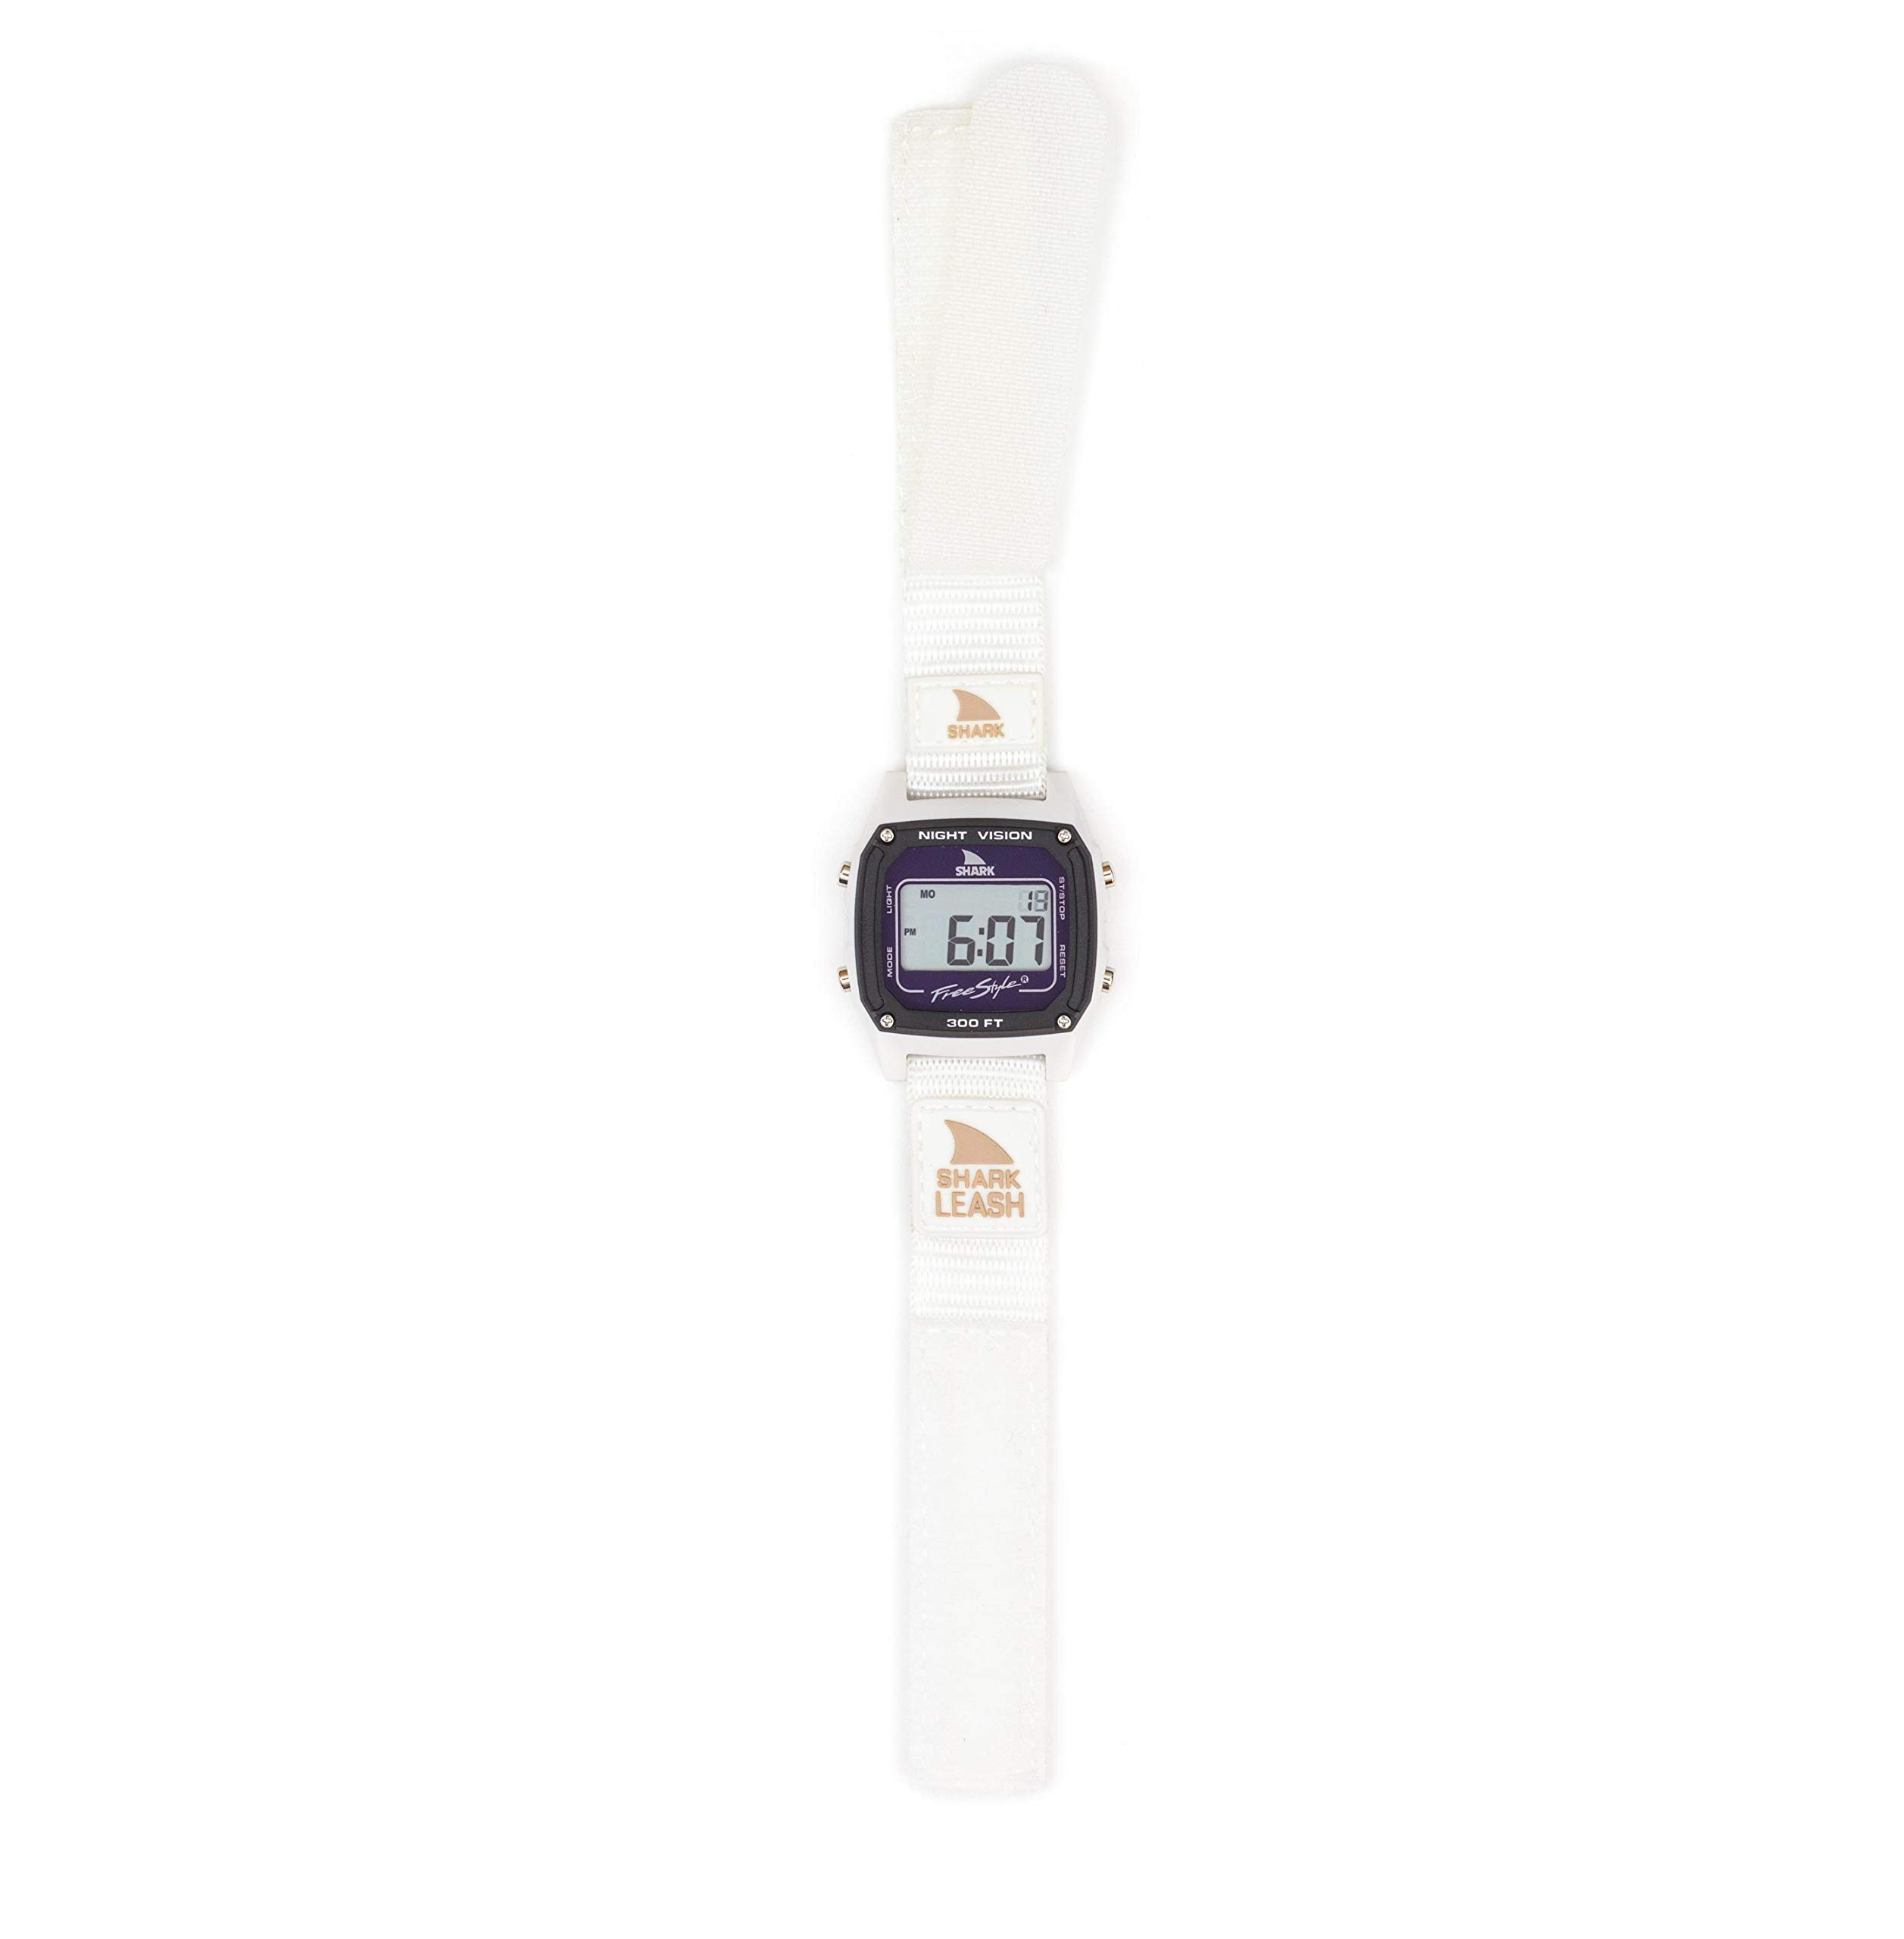 Freestyle Shark Classic Leash White Dolphin Unisex Watch FS101064 by Freestyle (Image #3)